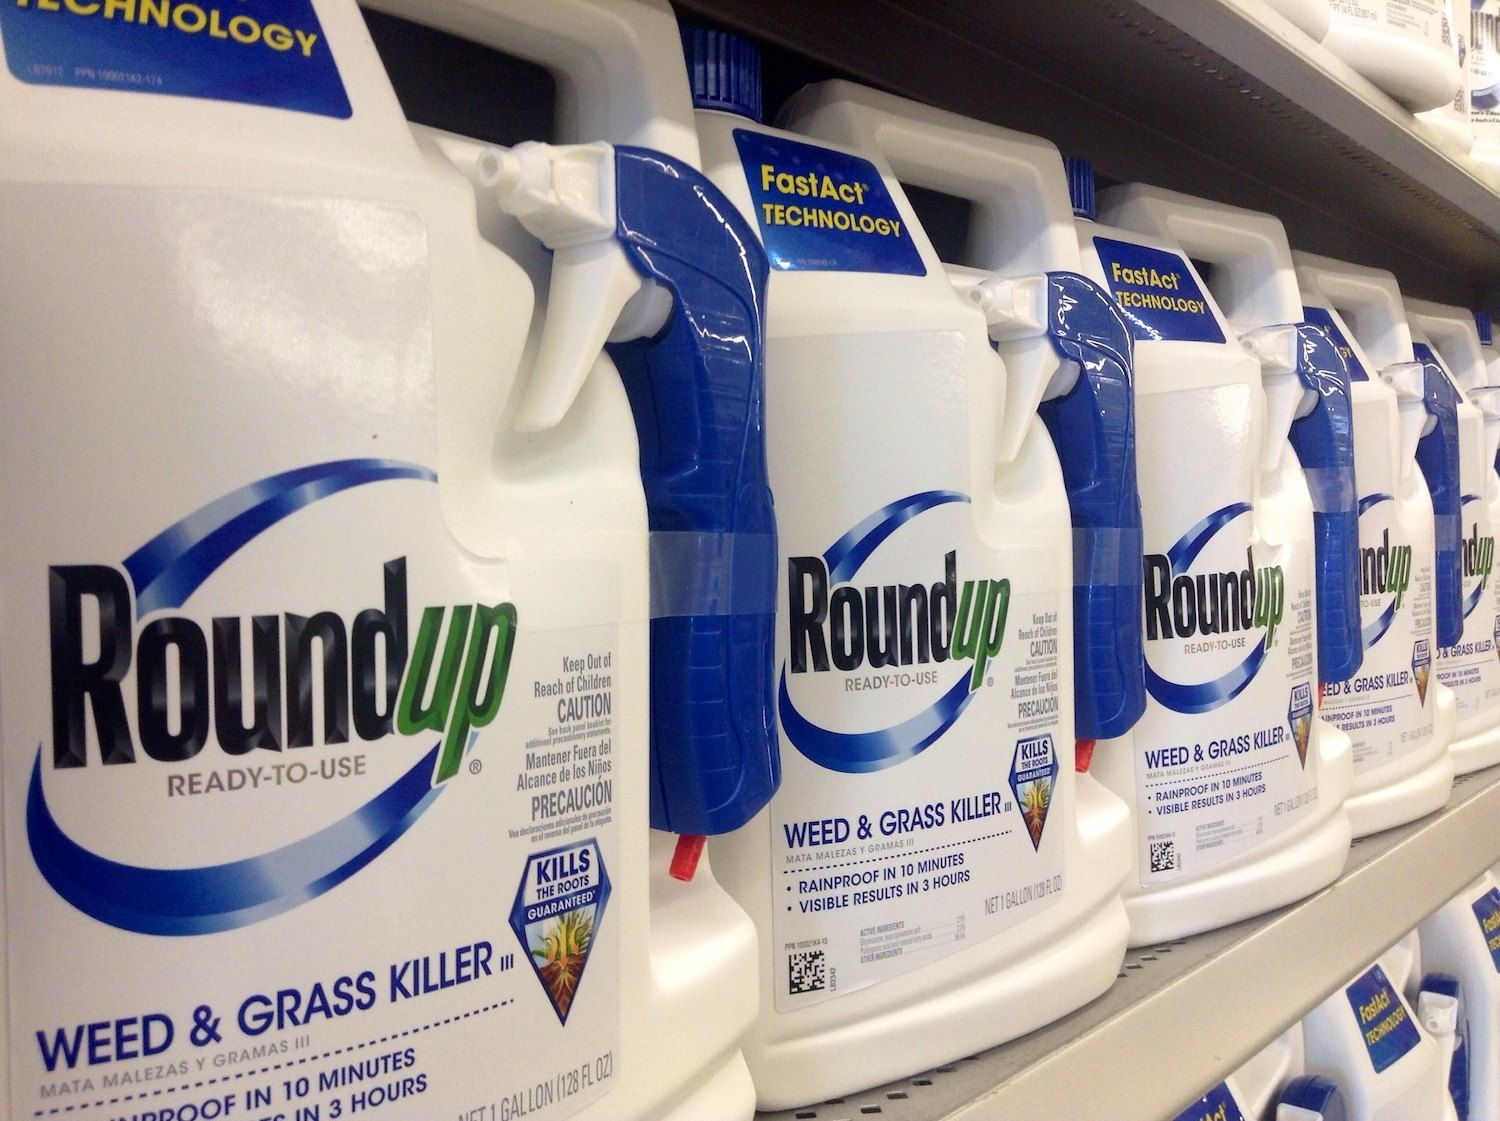 Bottles of Roundup, weed & grass killer, stocked on a shelf in a store for purchase. July 2021